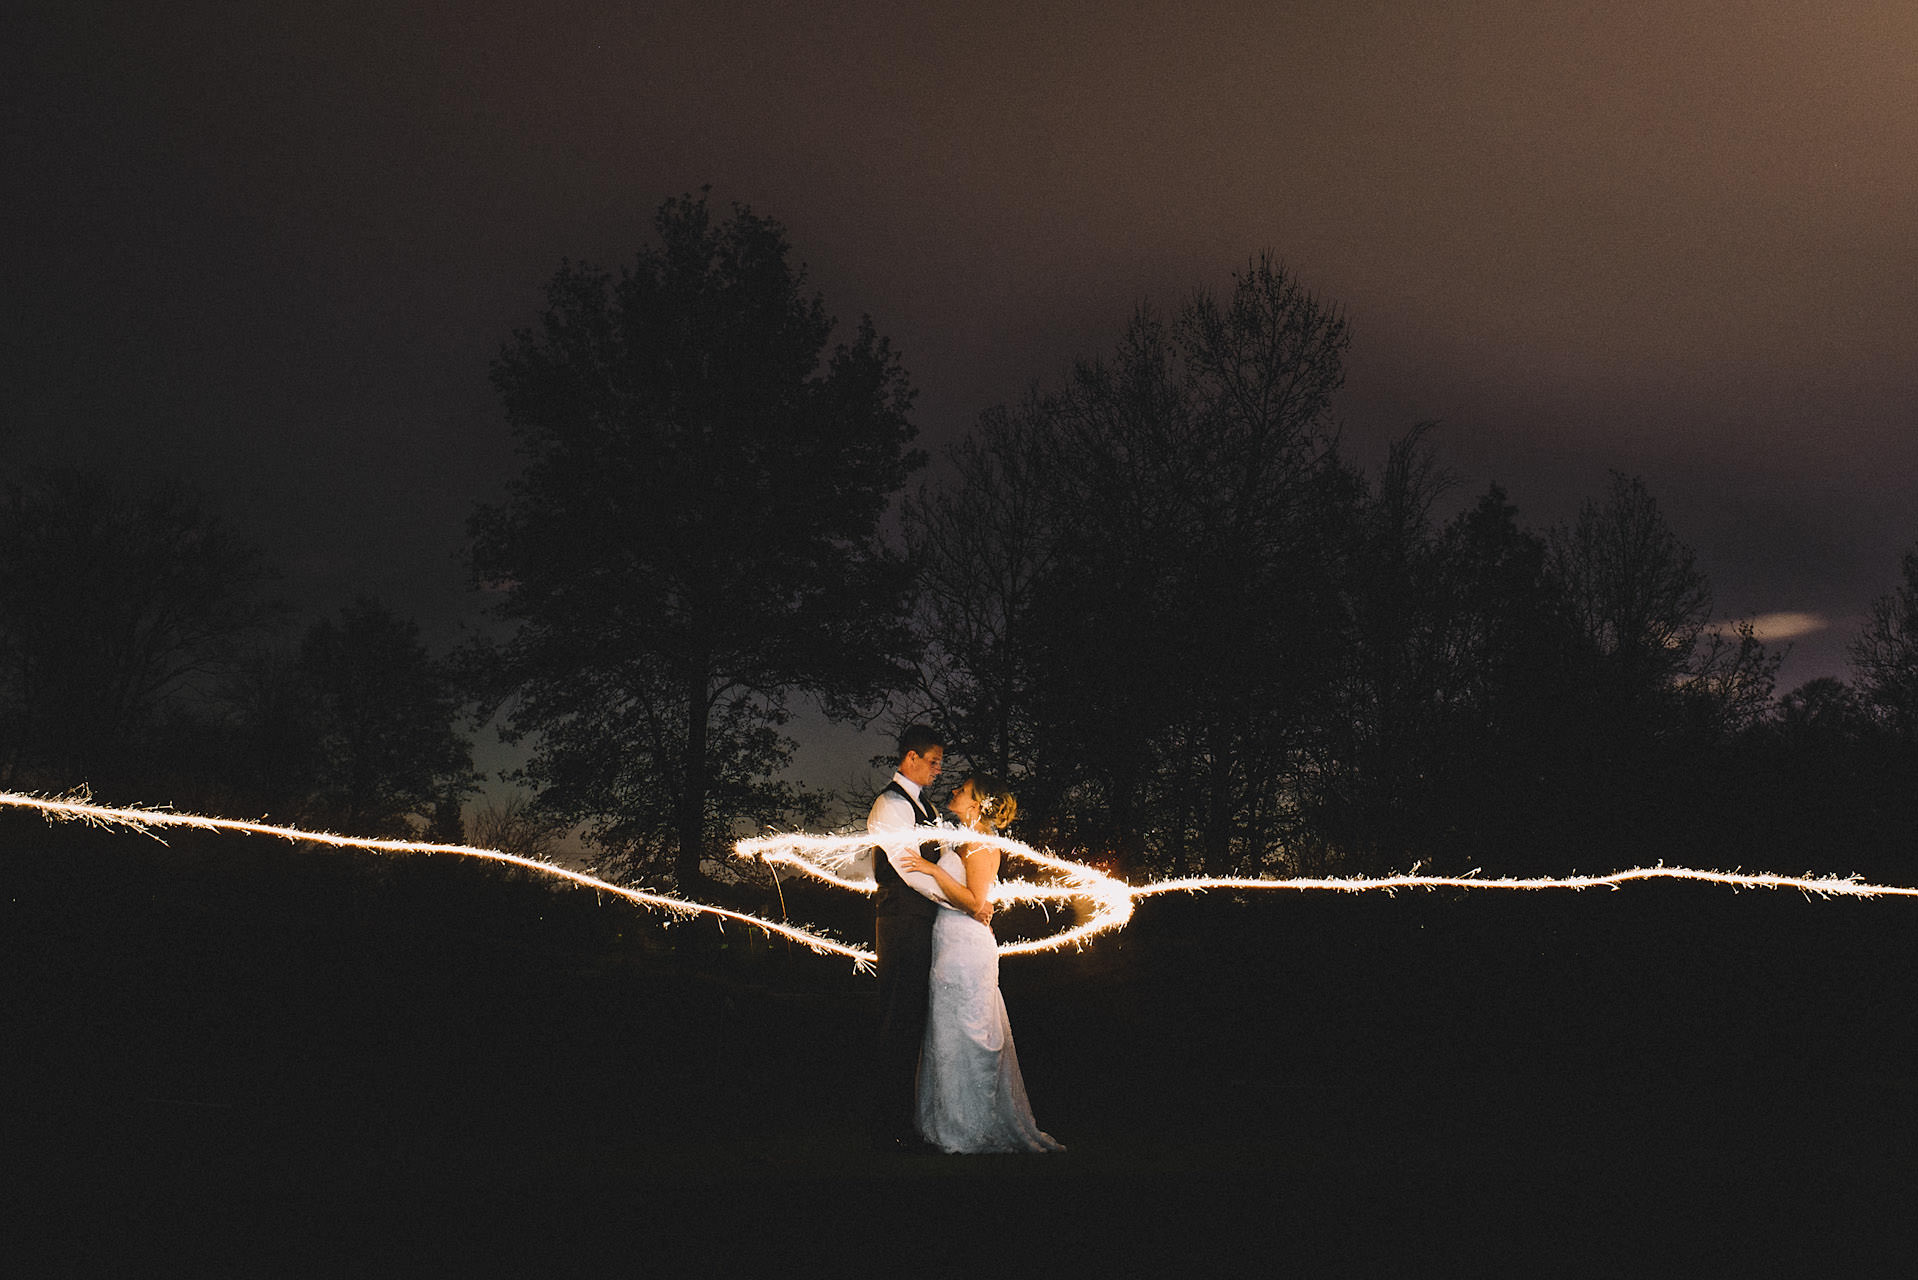 outdoor sparkler portrait in a forest